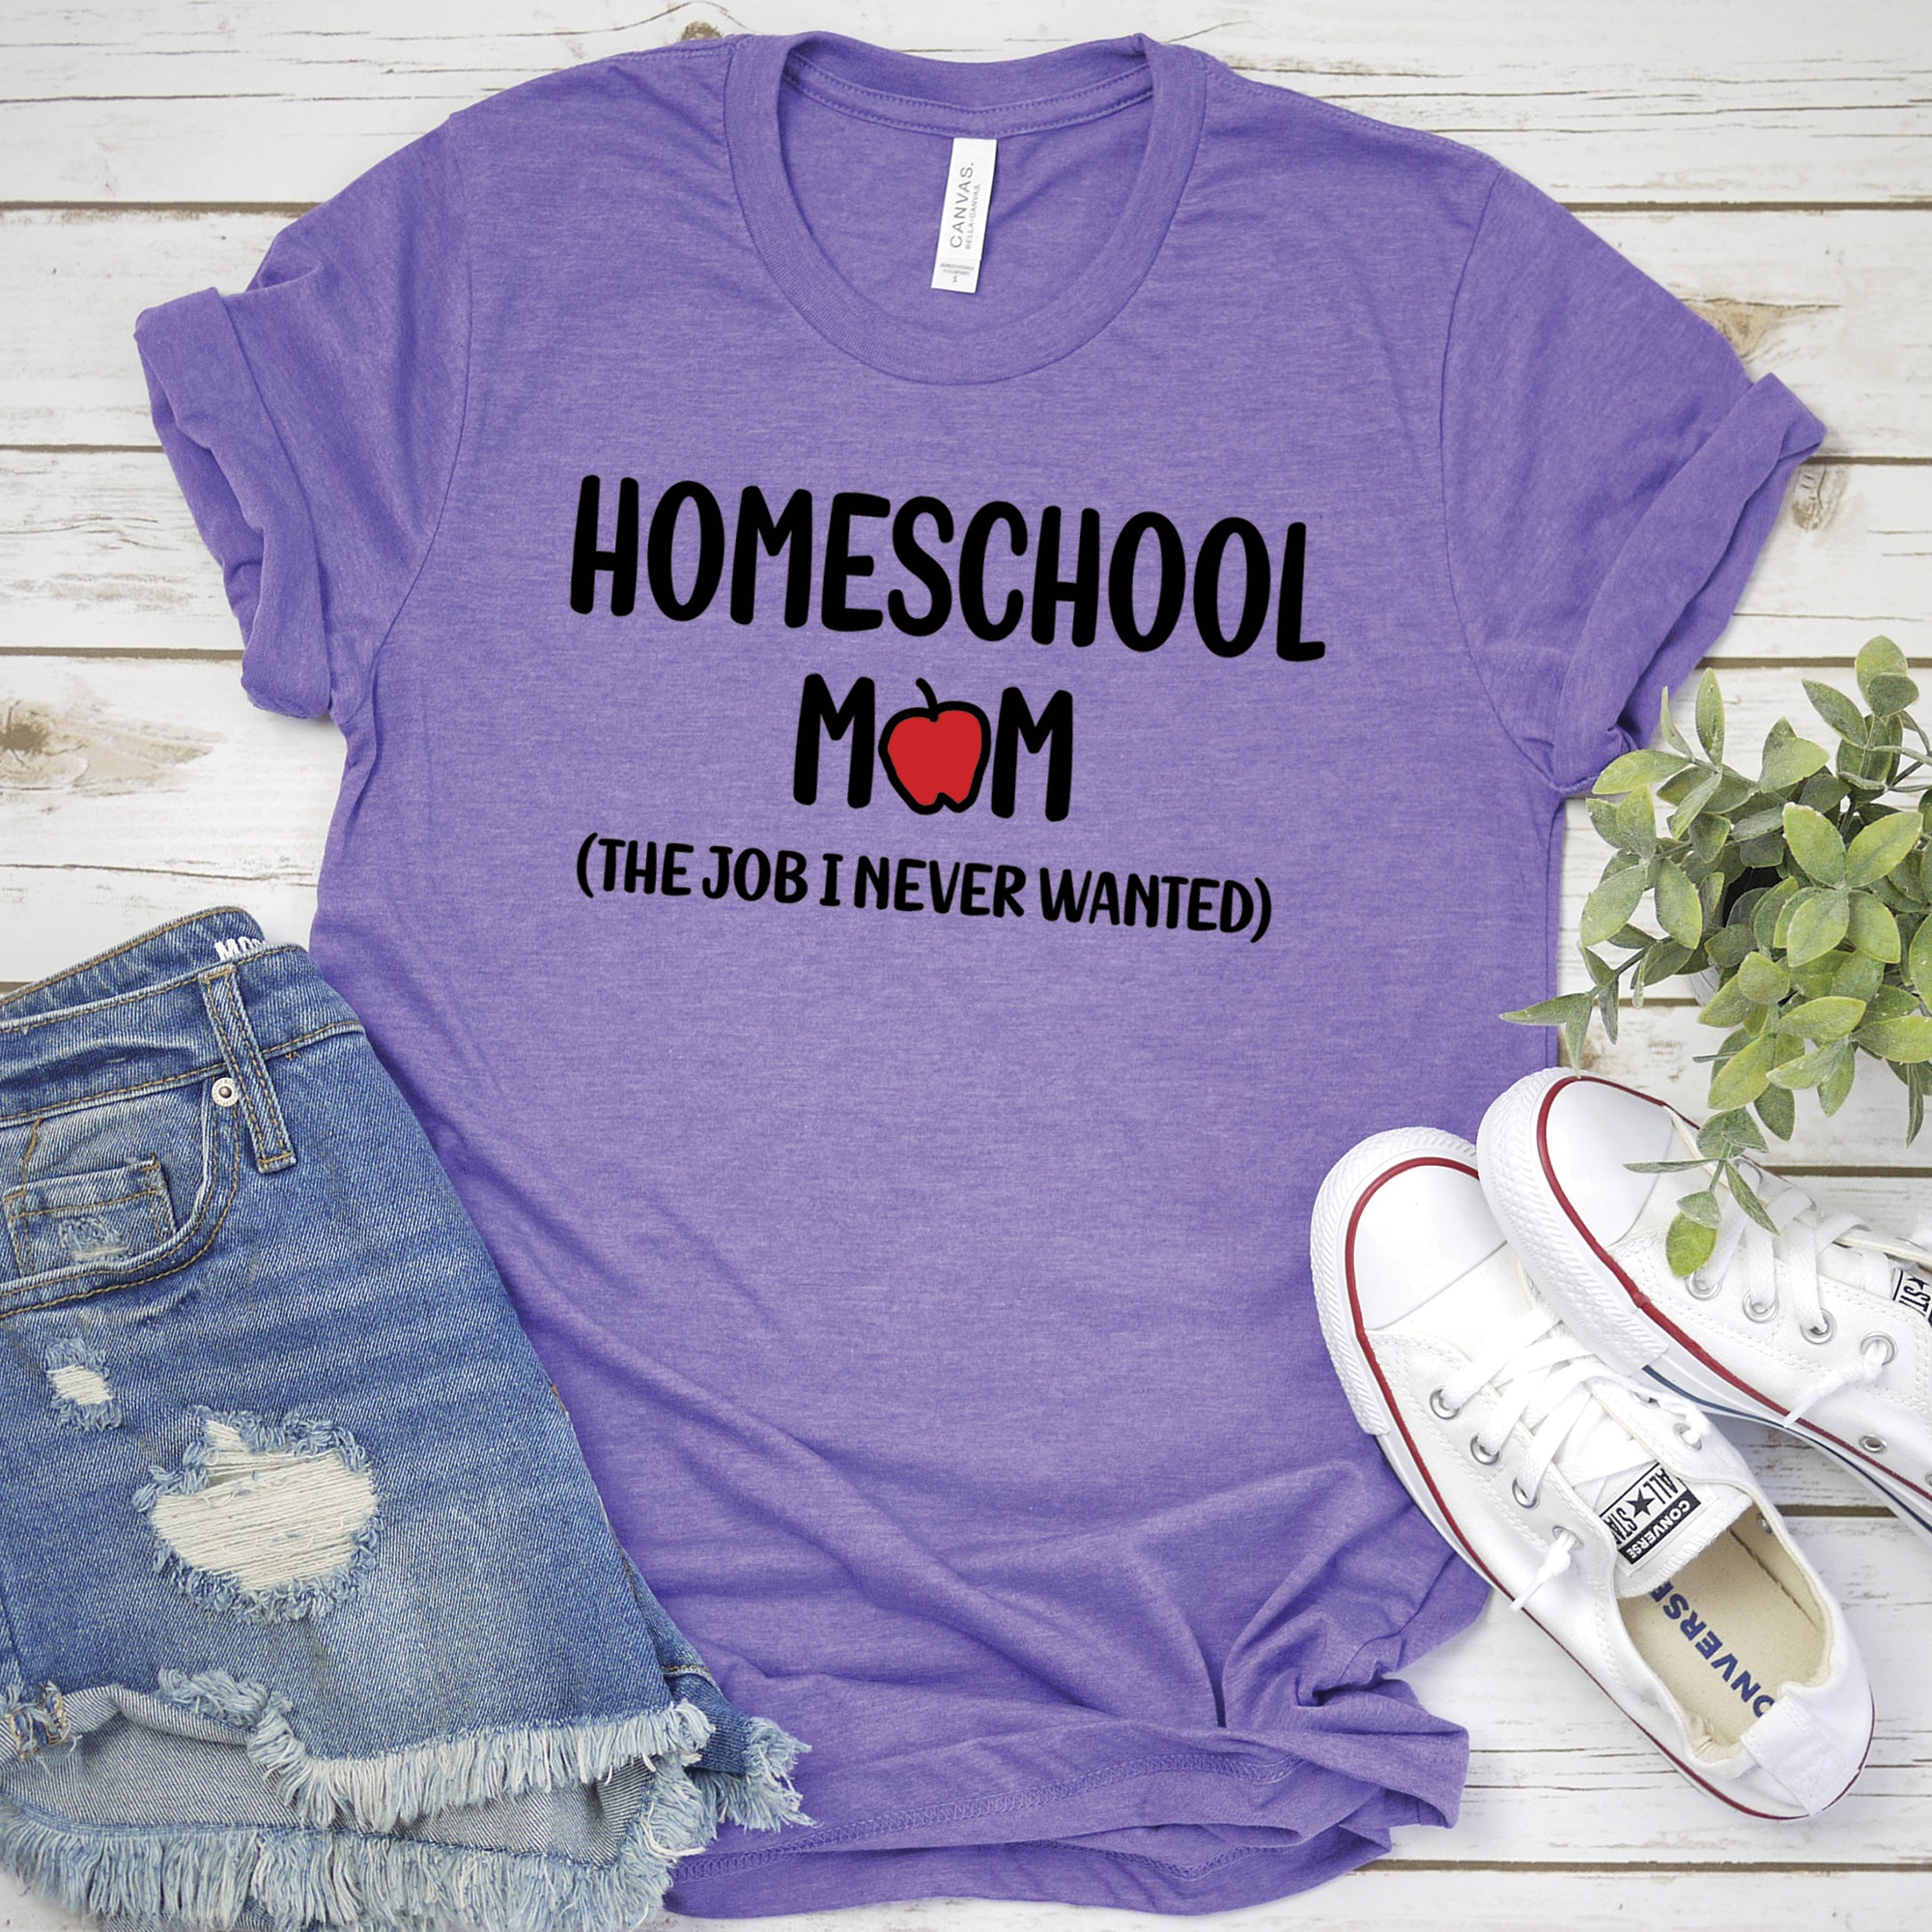 Homeschool Mom (The Job I Never Wanted)